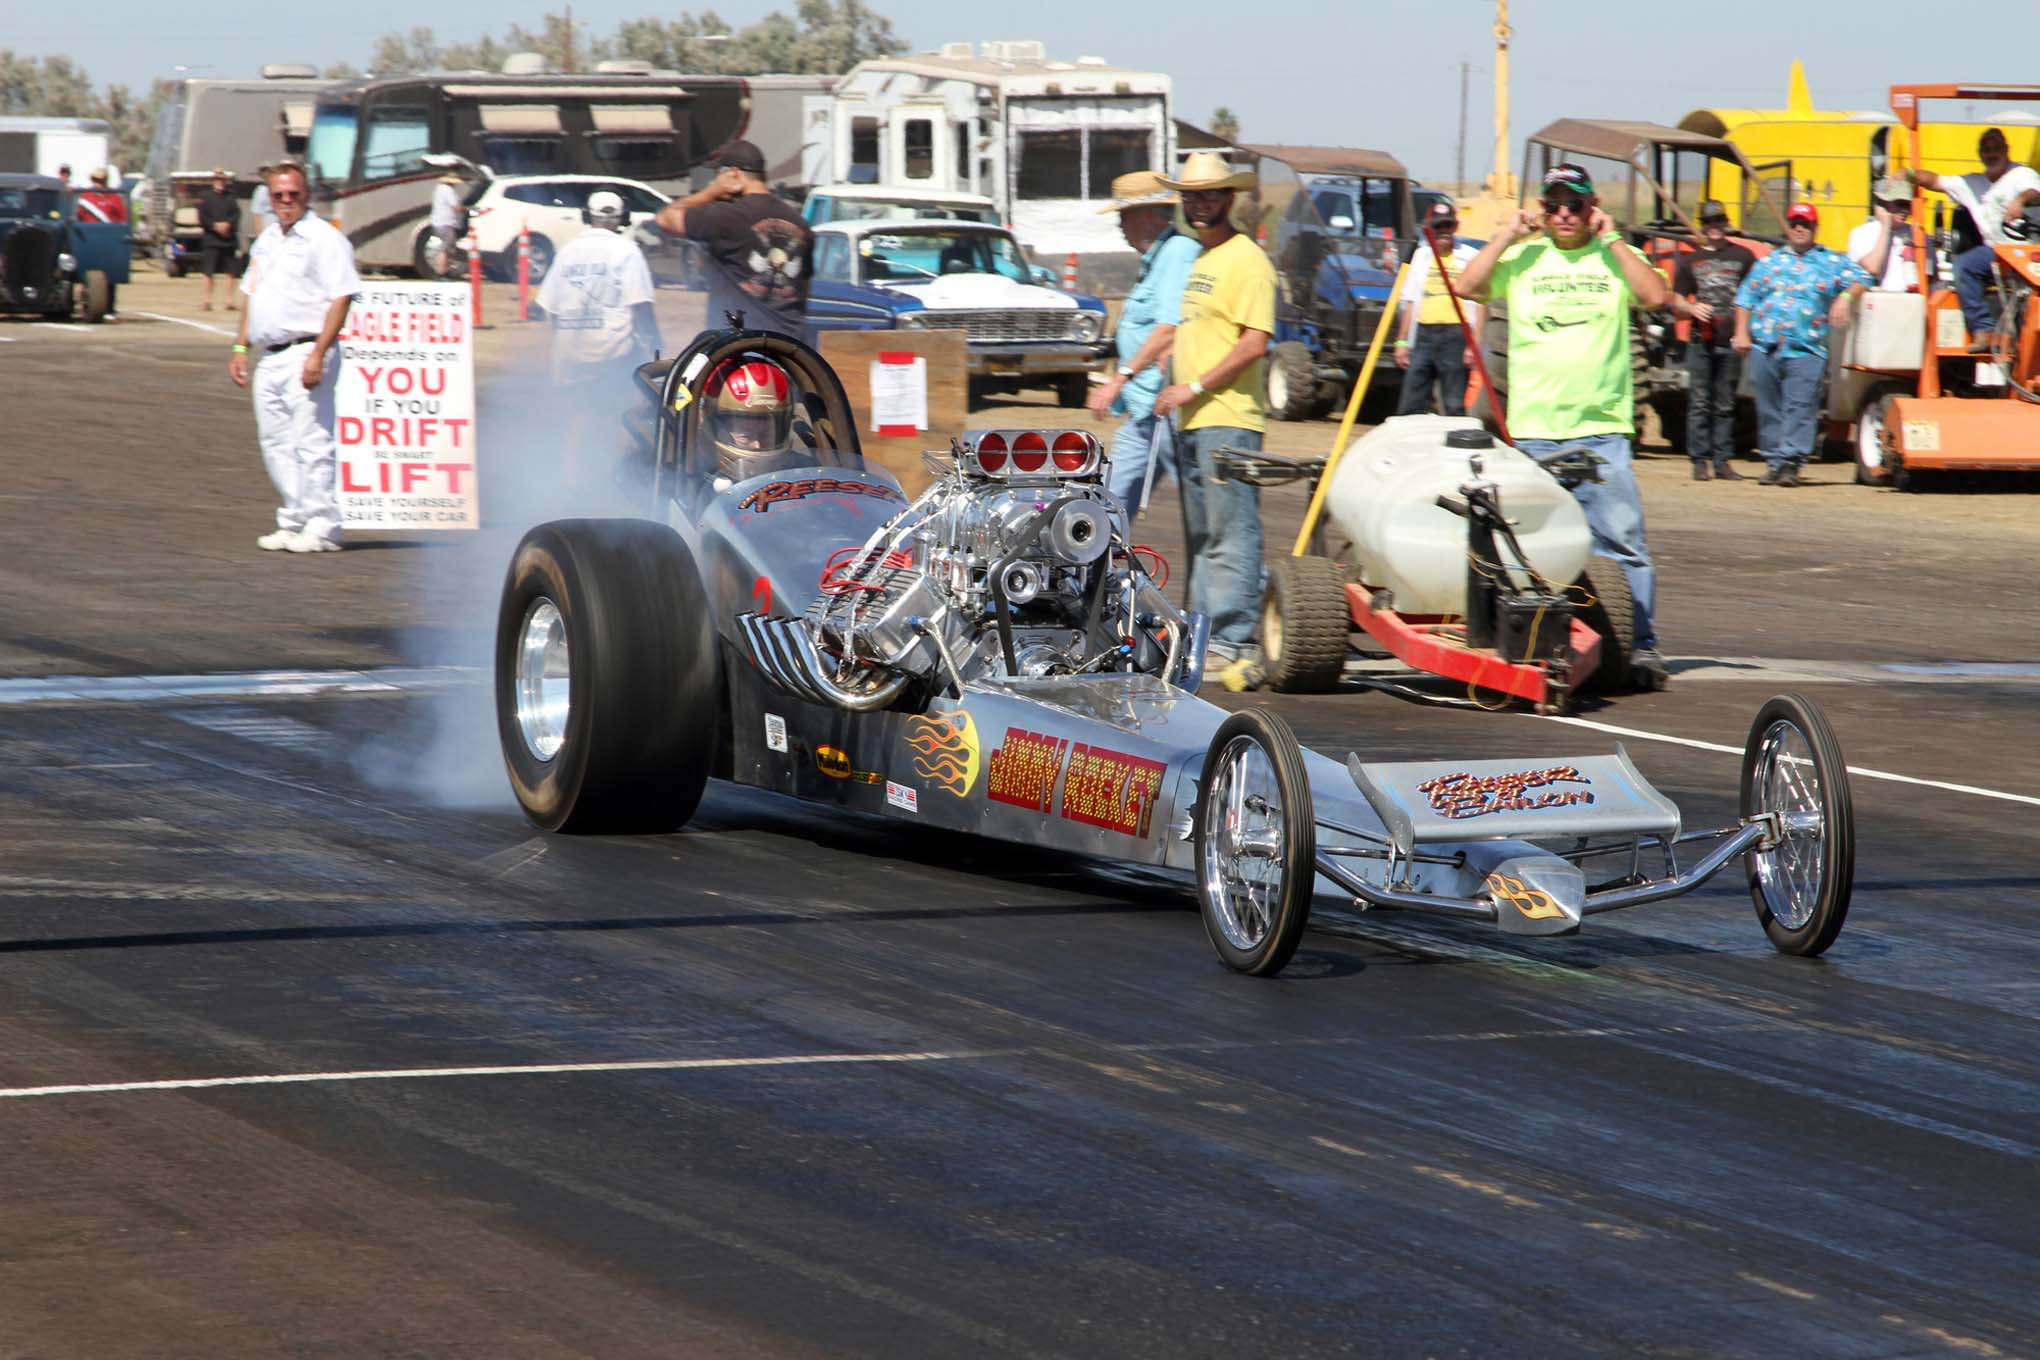 Last year at Eagle Field, Jimmy Reeser's injected 392 Hemi blew up in his dragster, in a big way, by shooting a couple of connecting rods out the side of the block. To fix the problem, he did what many racers do in that situation—he built a new motor that's bigger and better by adding a 6-71 blower and injection to the new 392 Hemi in his dragster.